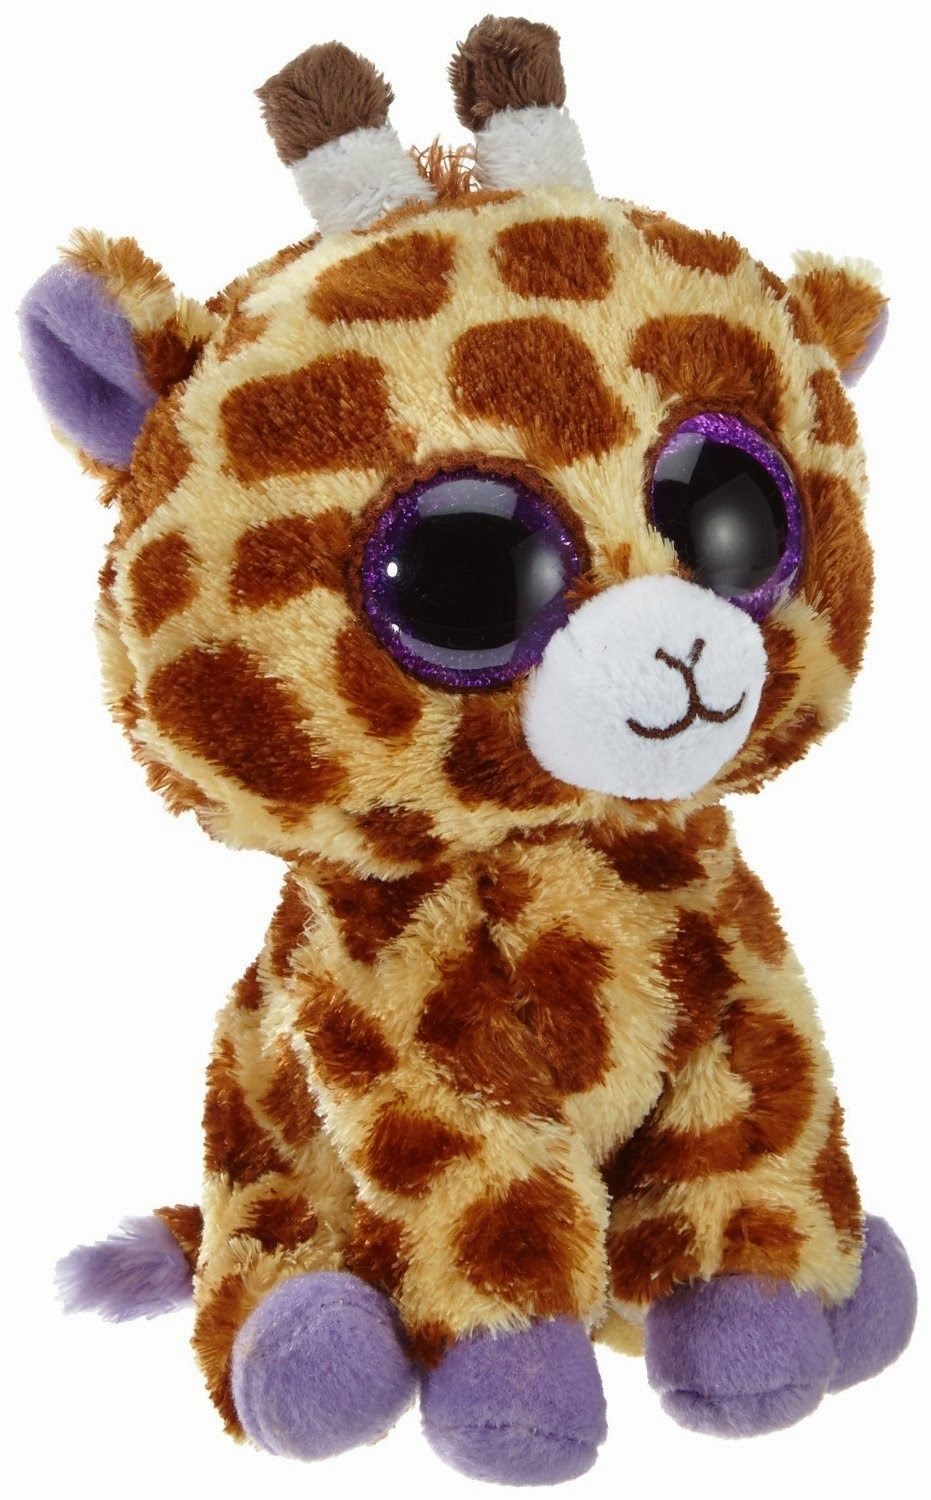 This little beanie boo just dropped in price. Ty beanie boos